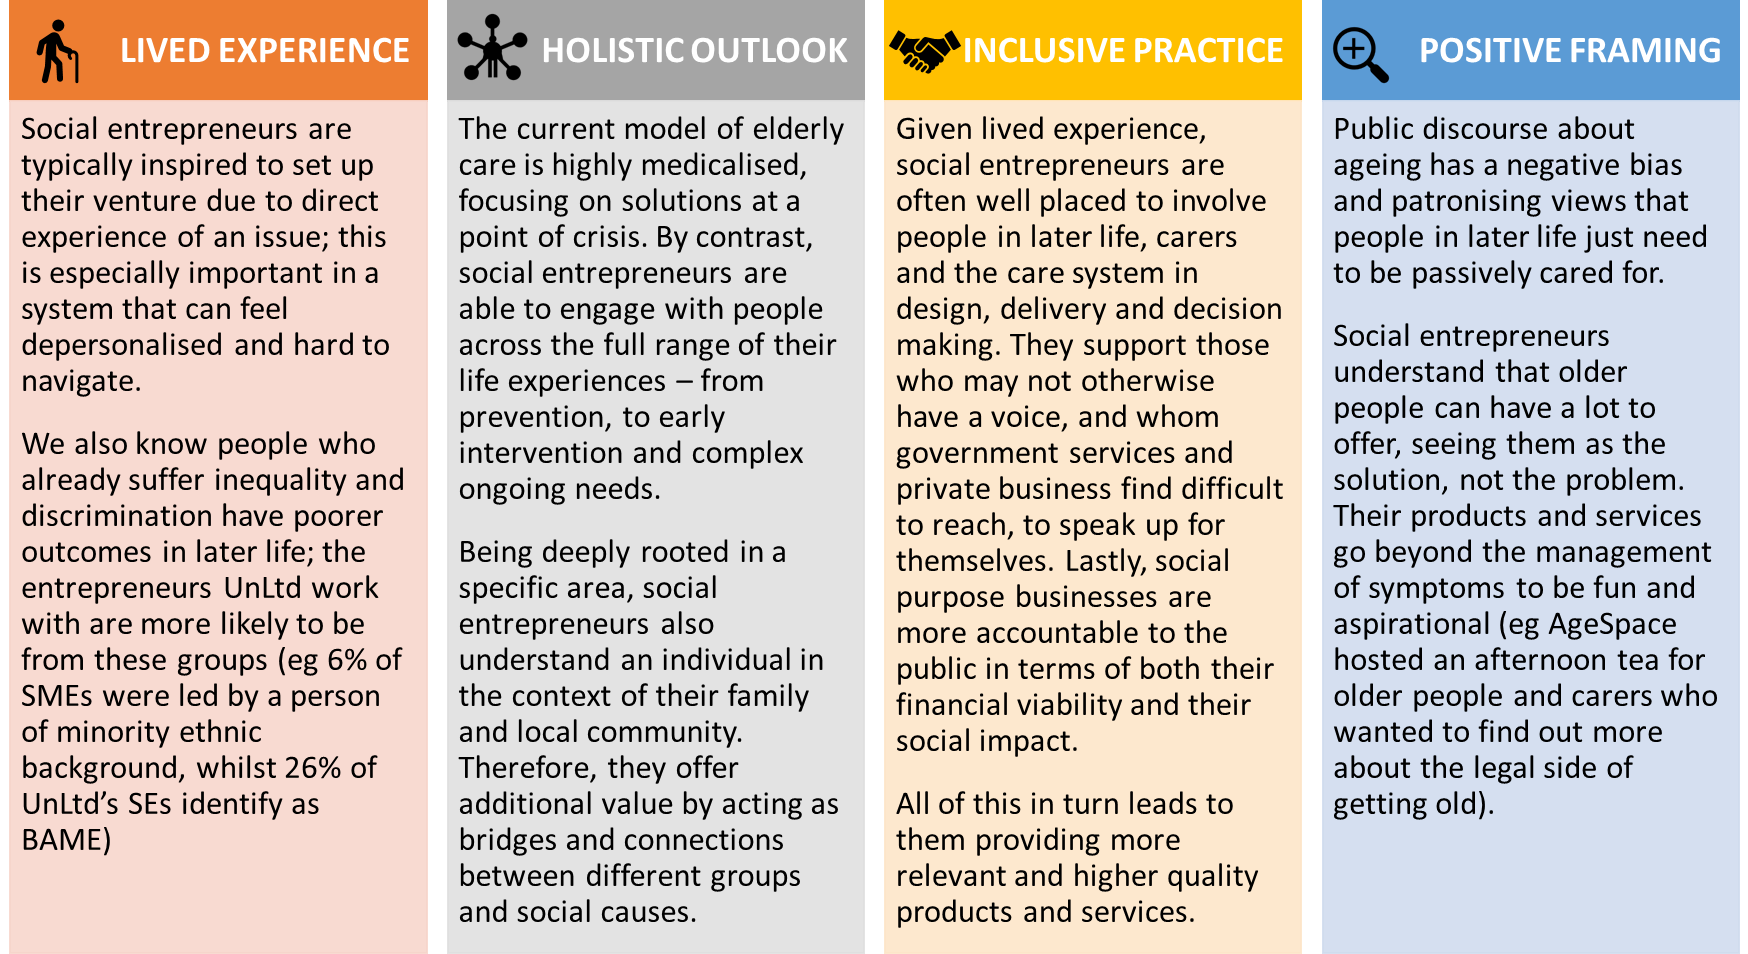 This image contains four columns describing the strengths of social entrepreneurs: lived experience, holistic outlook, inclusive practice, and positive framing.